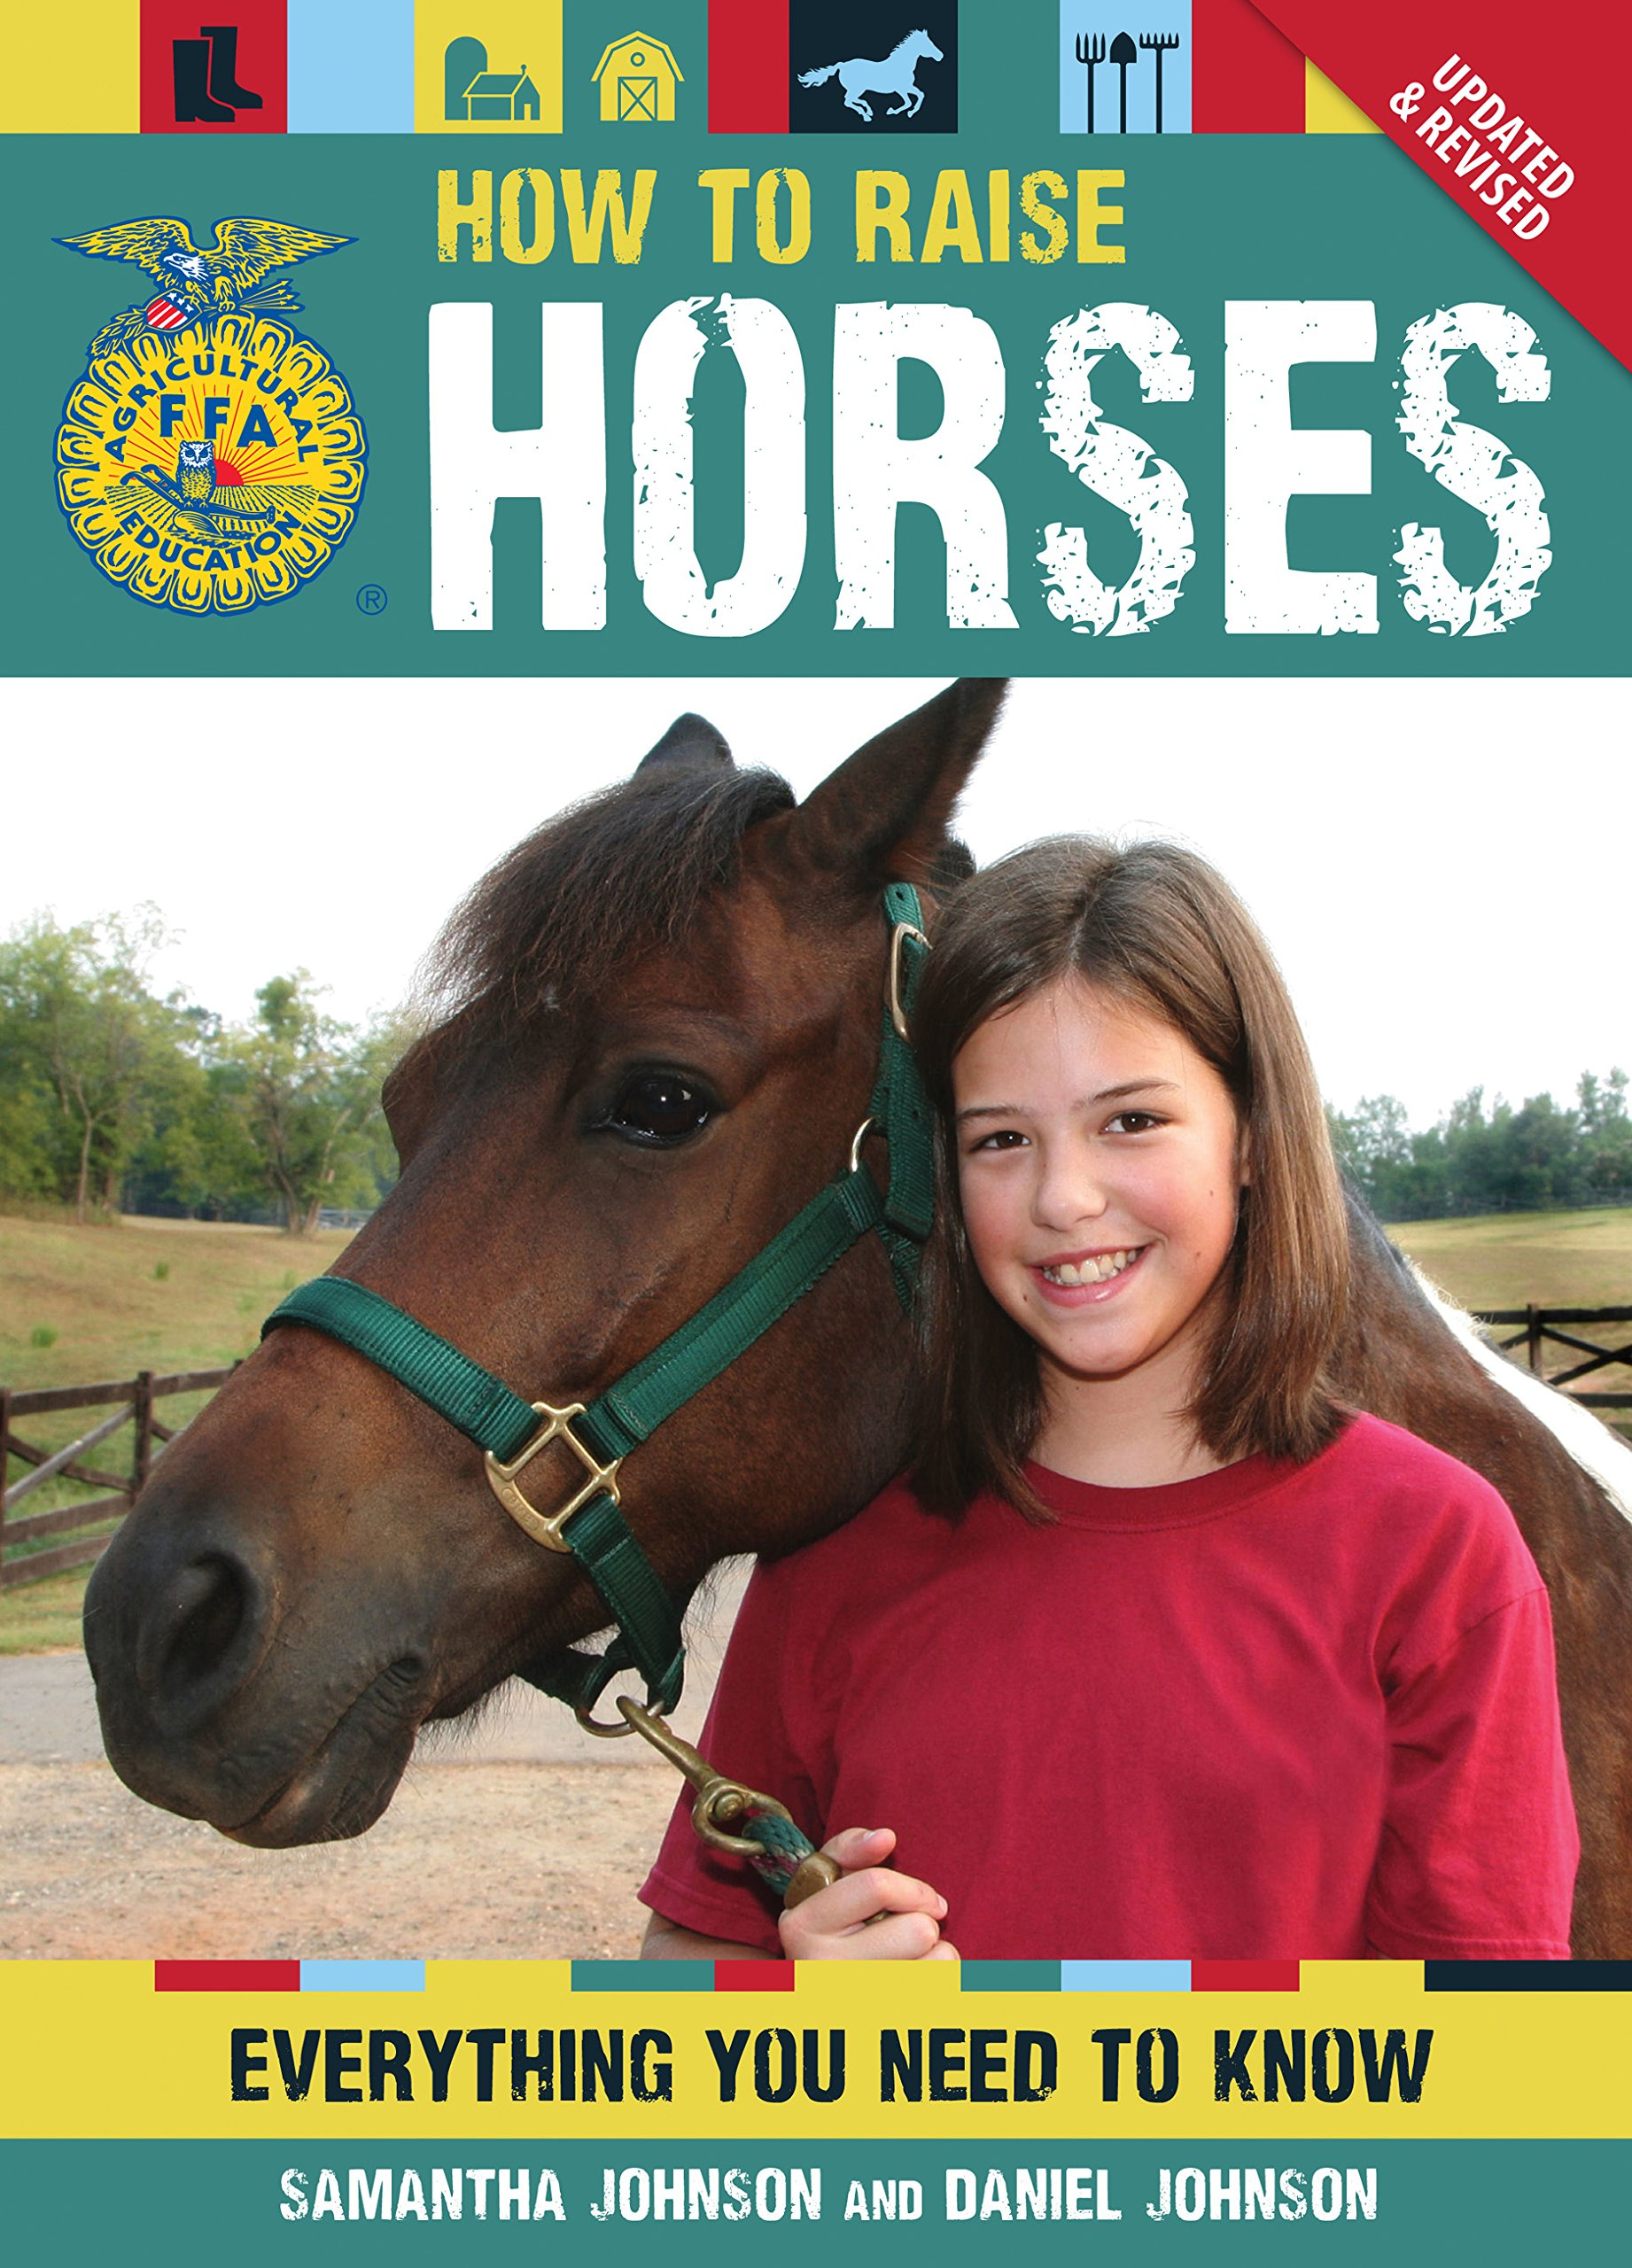 How to Raise Horses picture